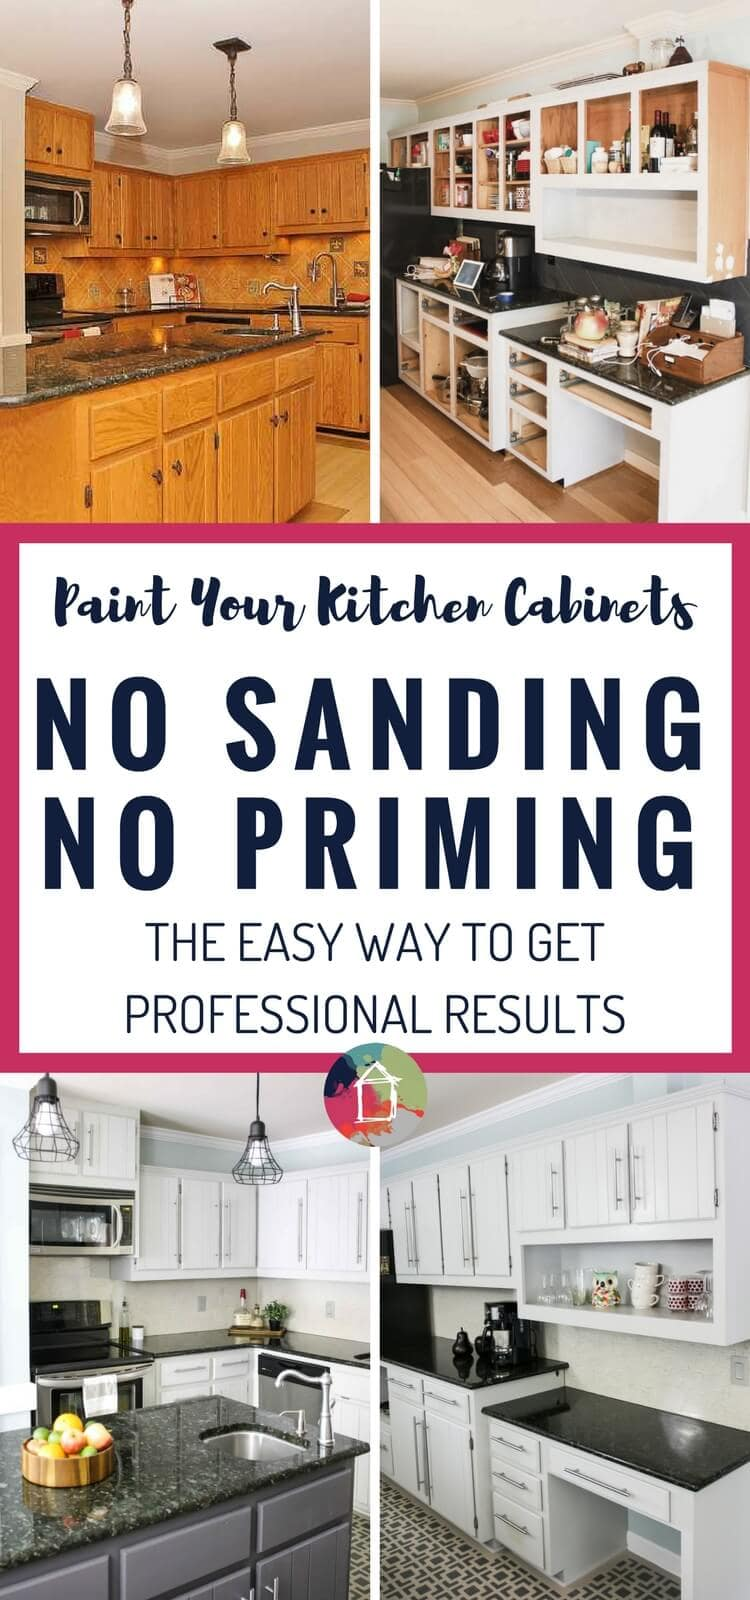 you can paint your kitchen cabinets without priming or sanding wooo hooo - Professional Painting Kitchen Cabinets